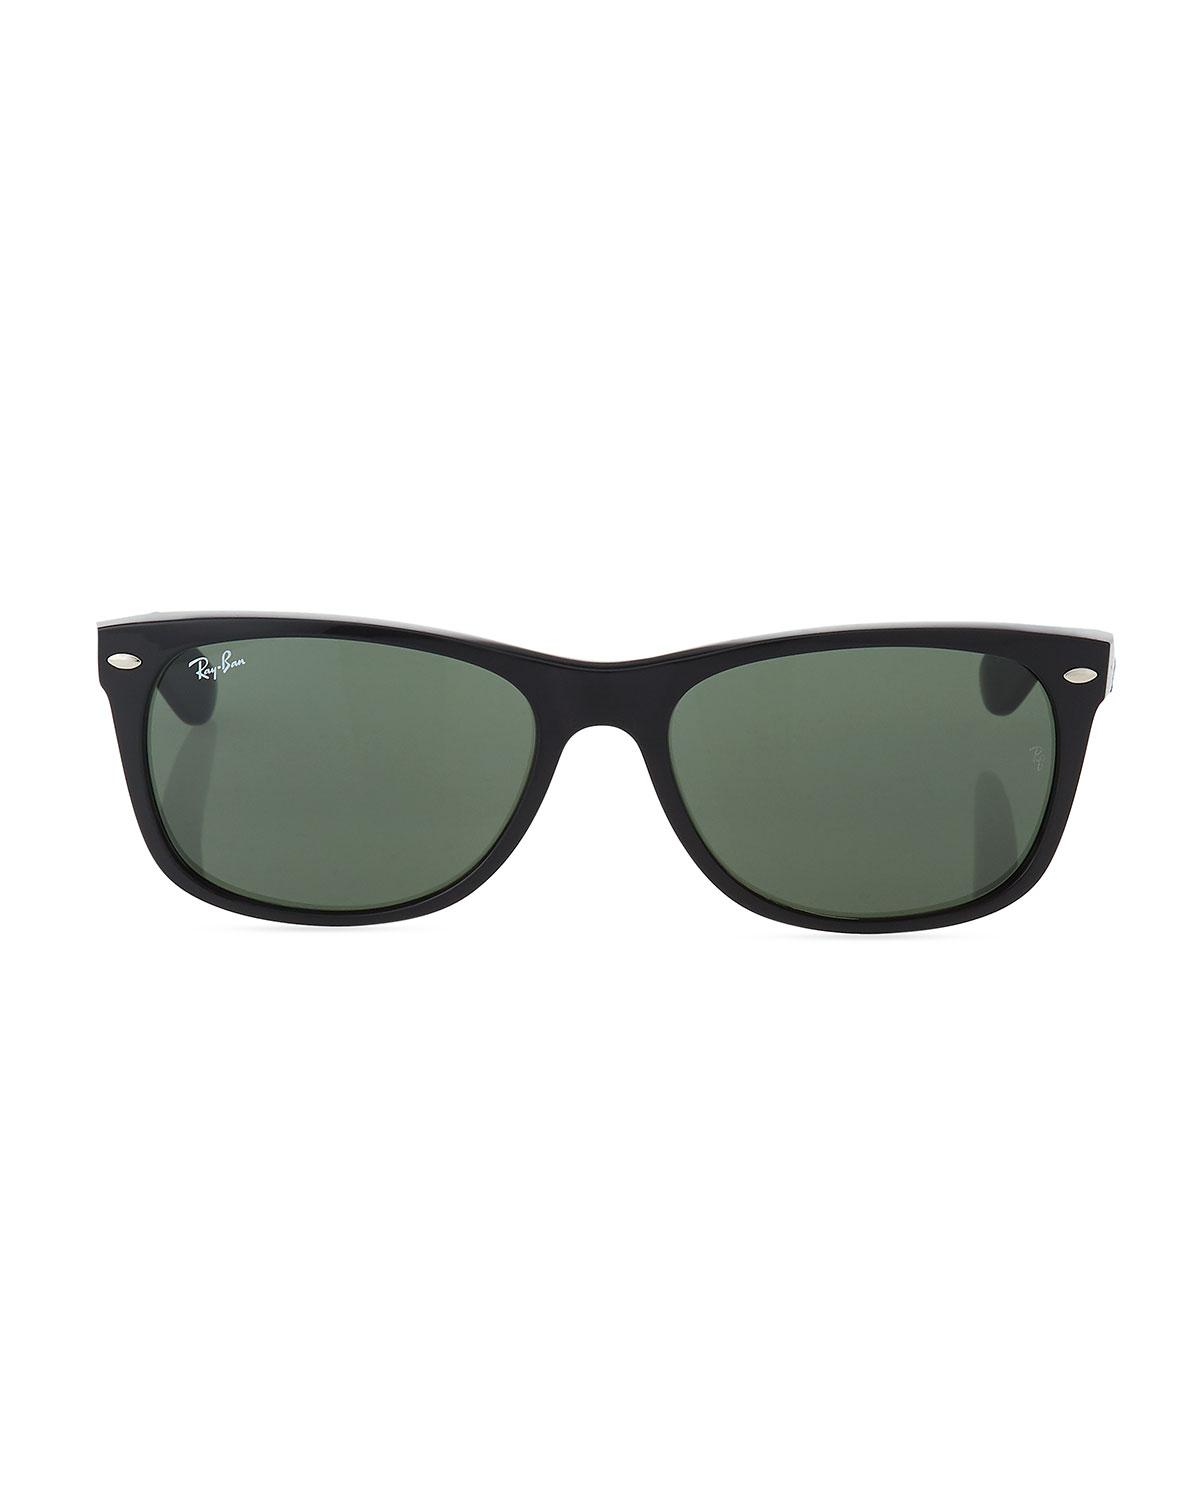 4155c38f7a Lyst - Ray-Ban Men s New Wayfarer 58mm Flat-top Plastic Sunglasses in Green  for Men - Save 2%